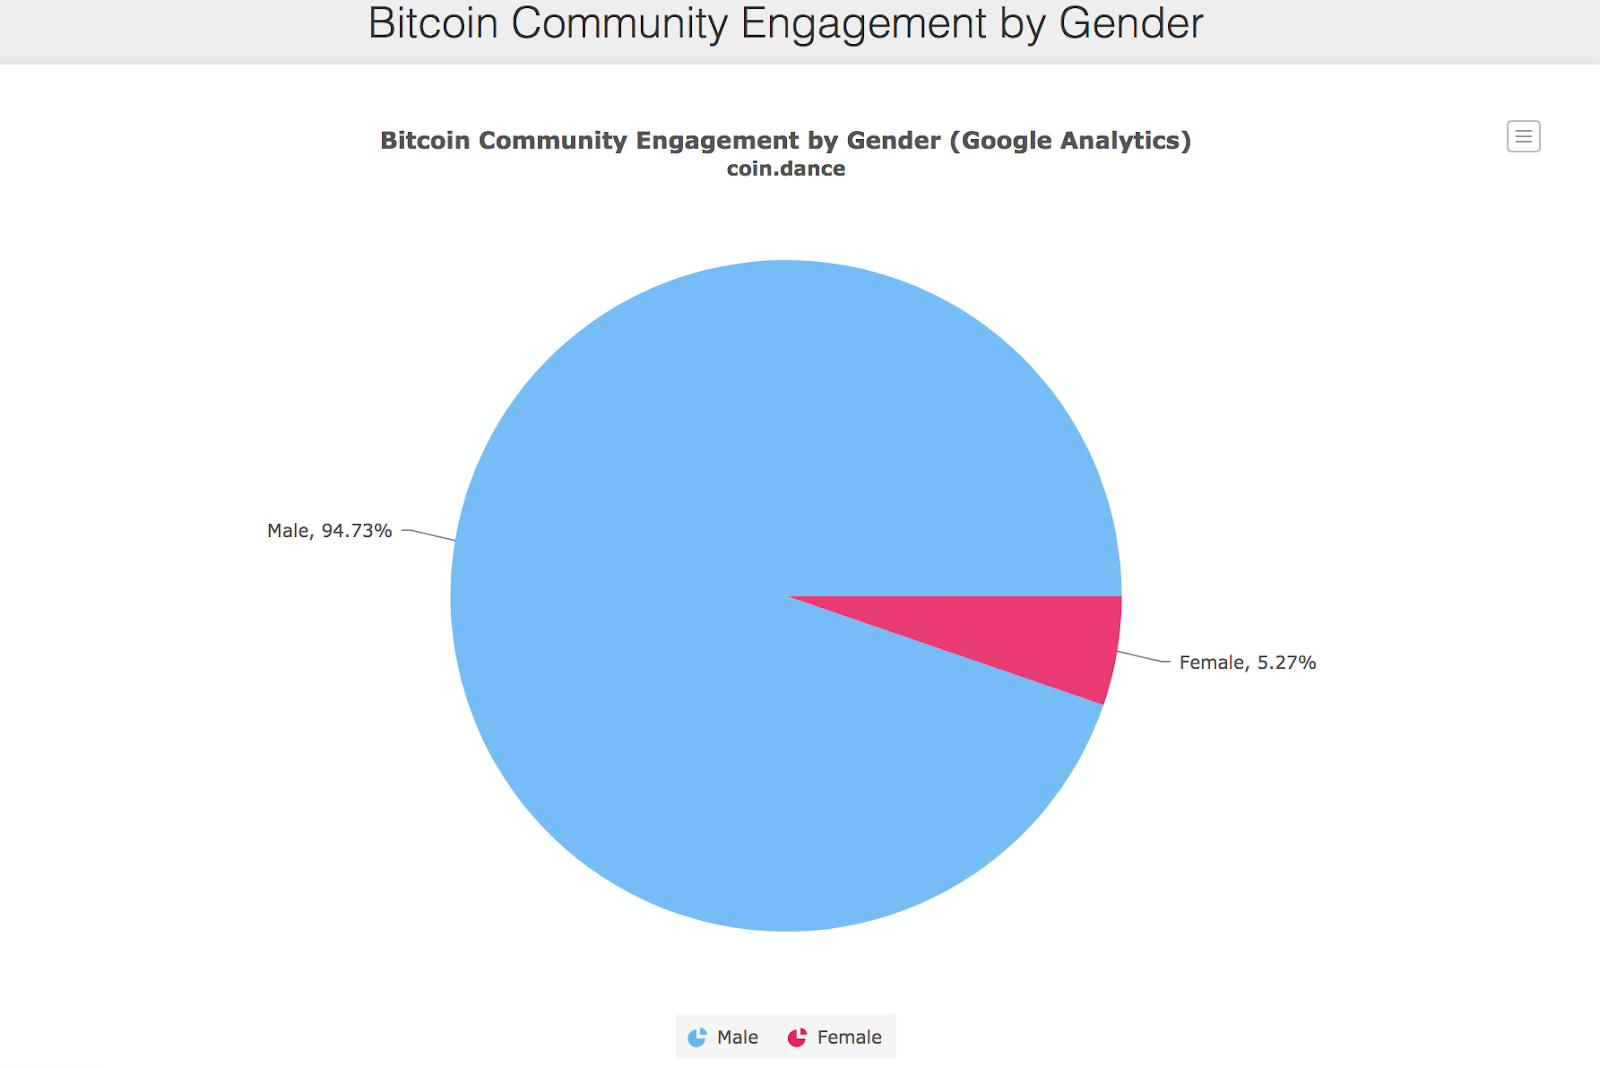 Bitcoin Community Engagement by Gender